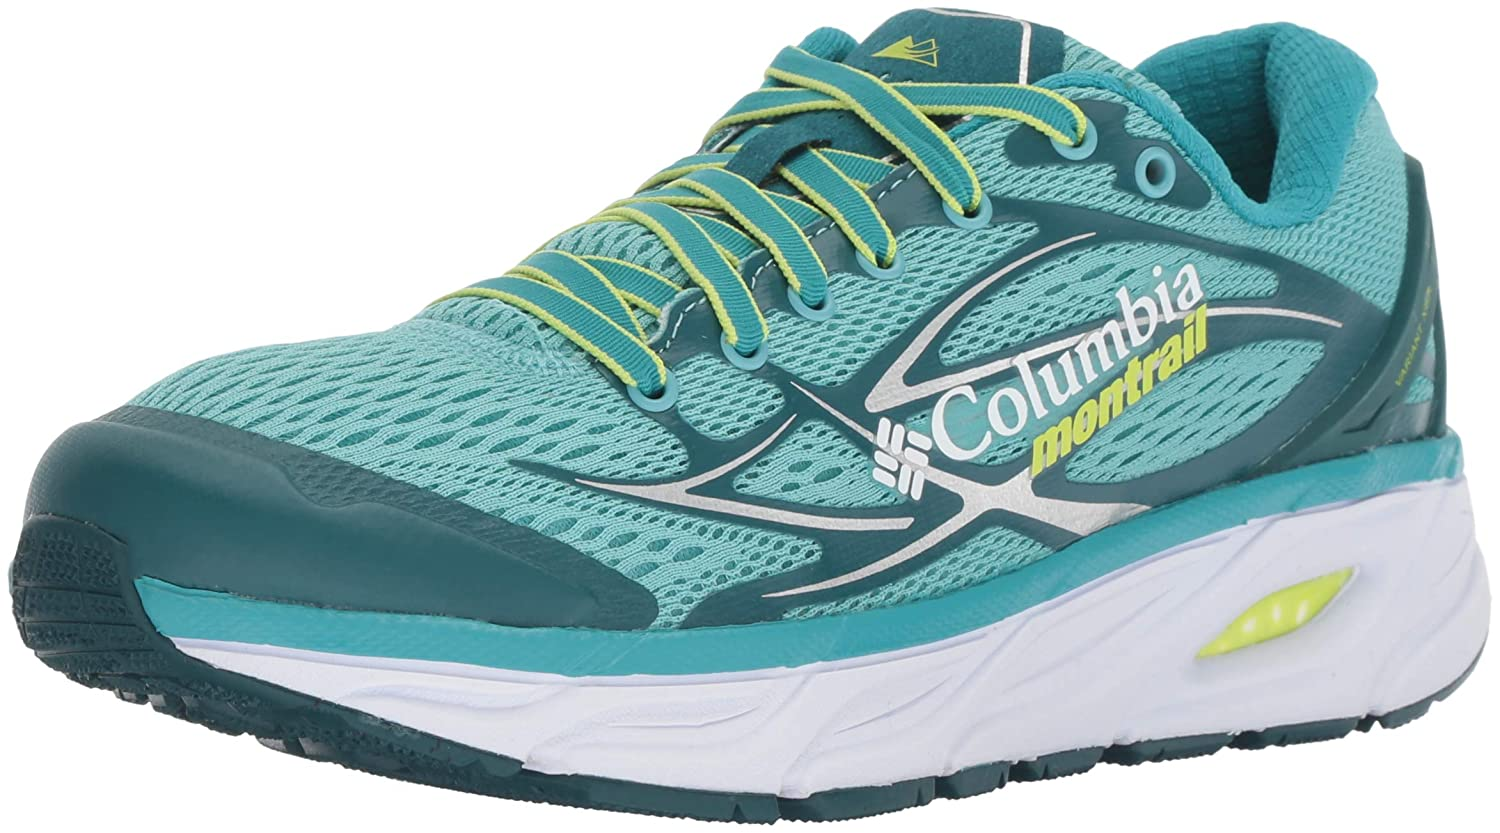 Columbia Montrail Women's Variant X.S.R. Trail Running Shoe 1769421